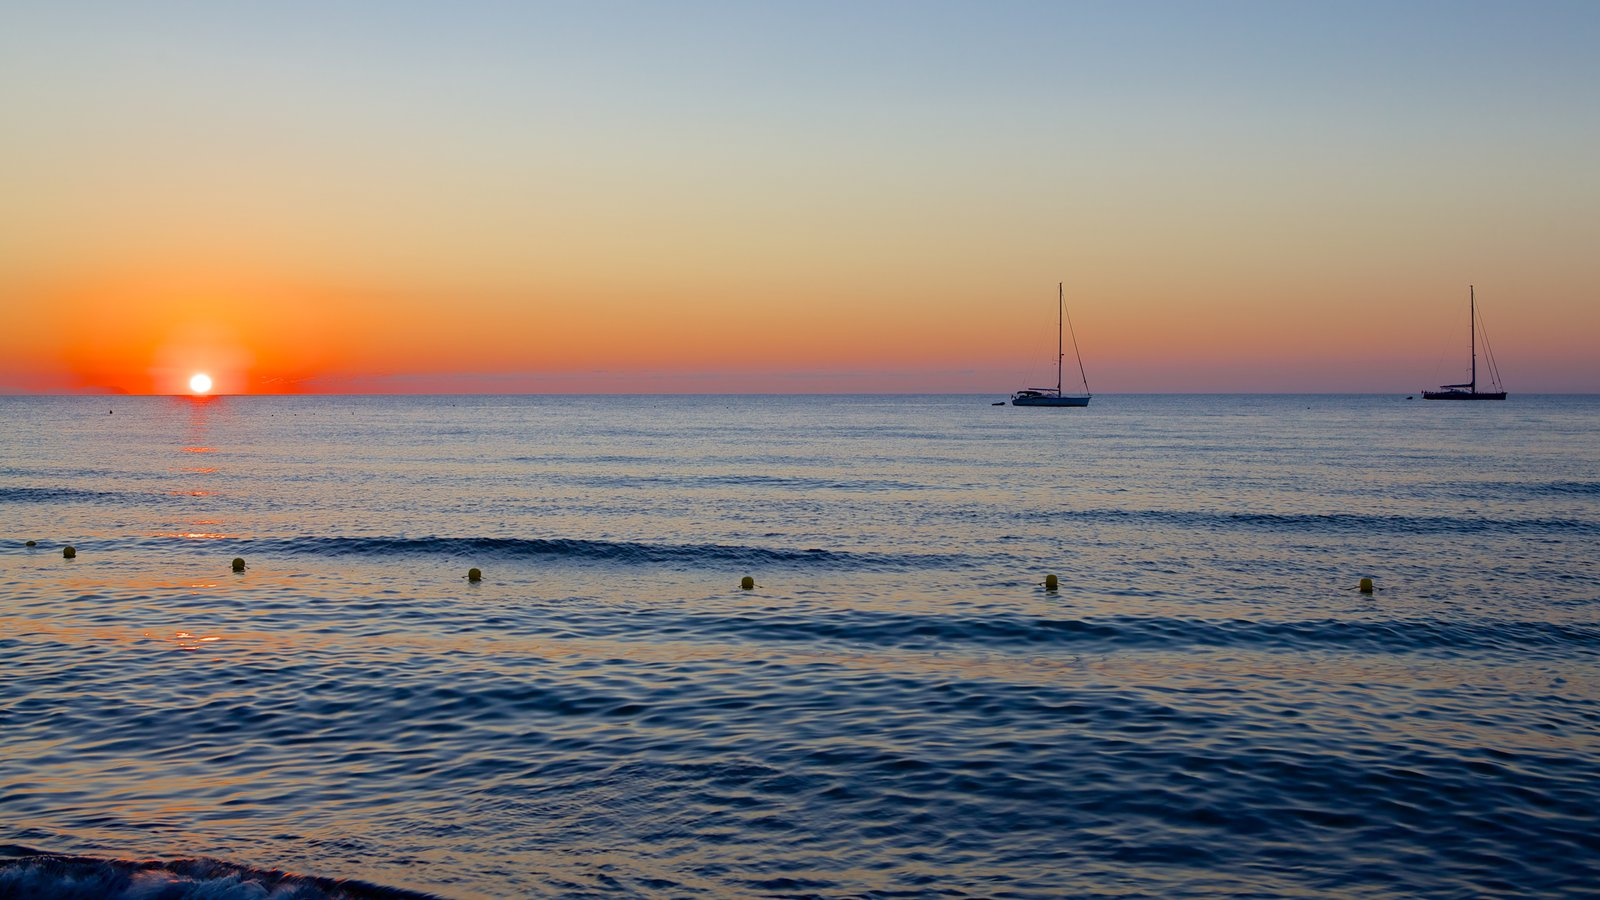 Cefalu featuring general coastal views and a sunset